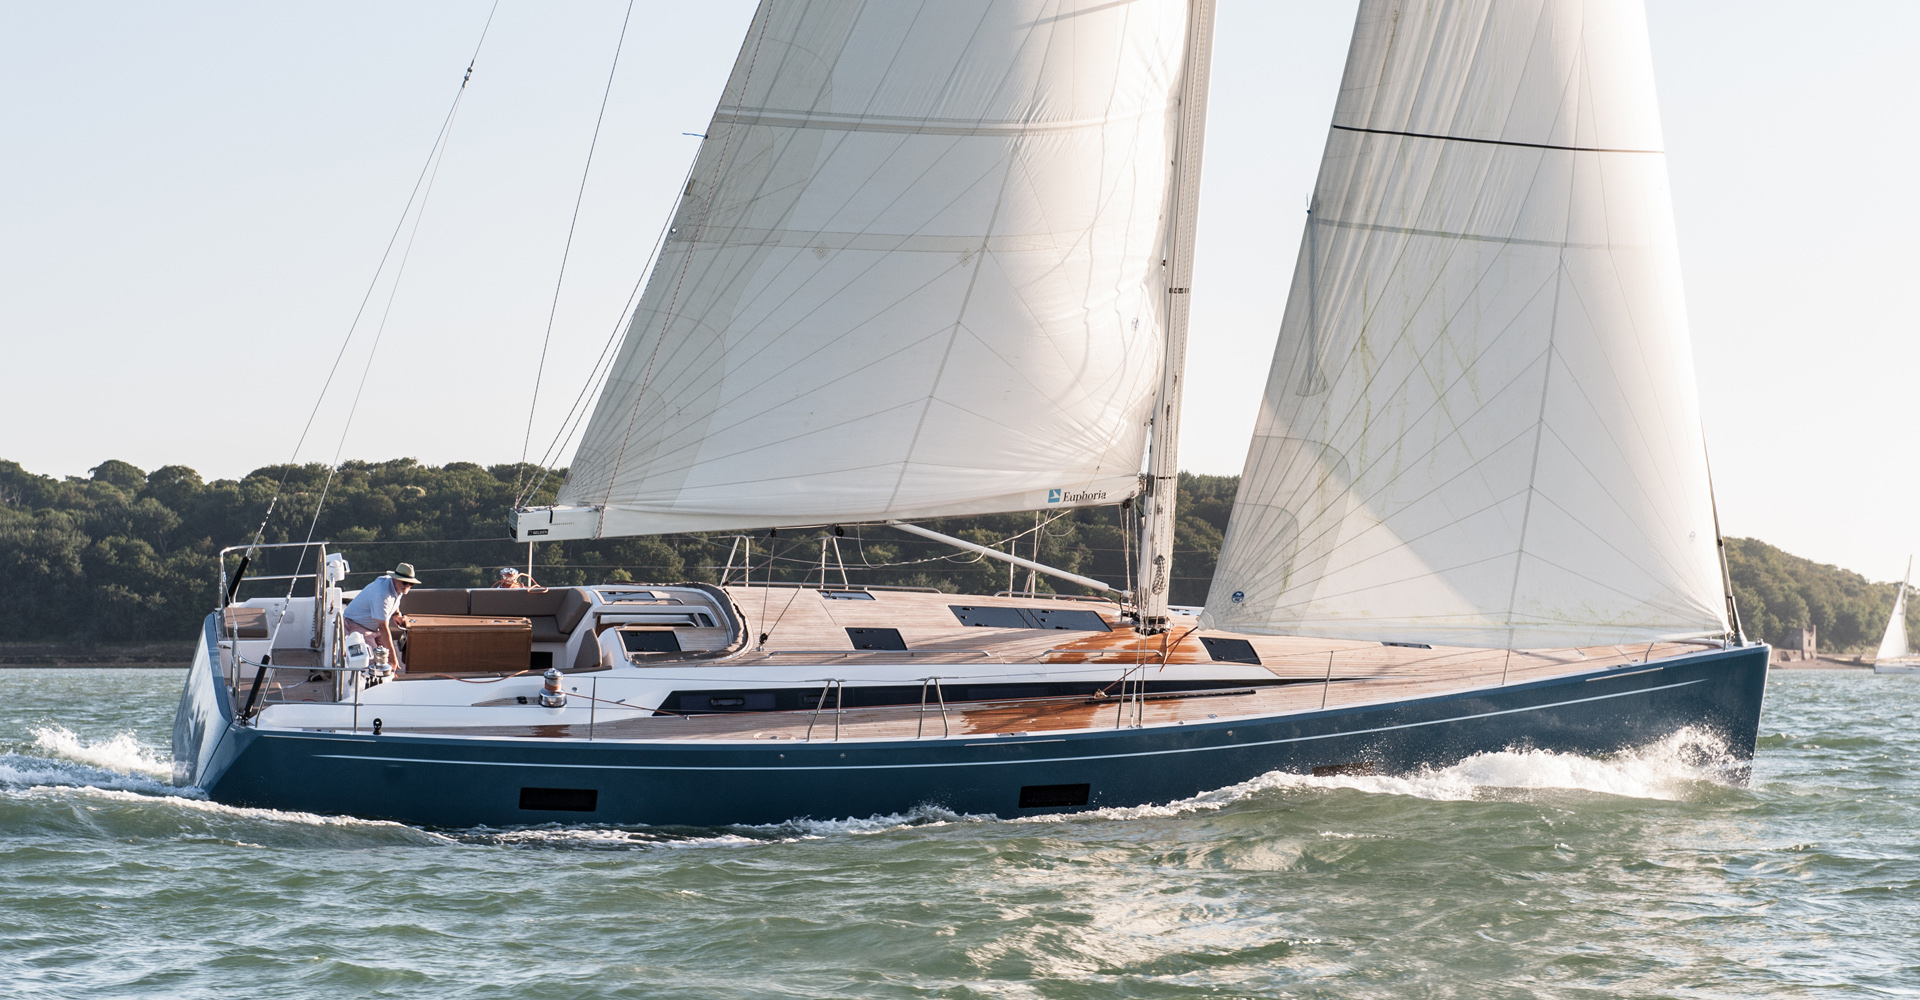 This sailing yacht was built by Sirena Marine